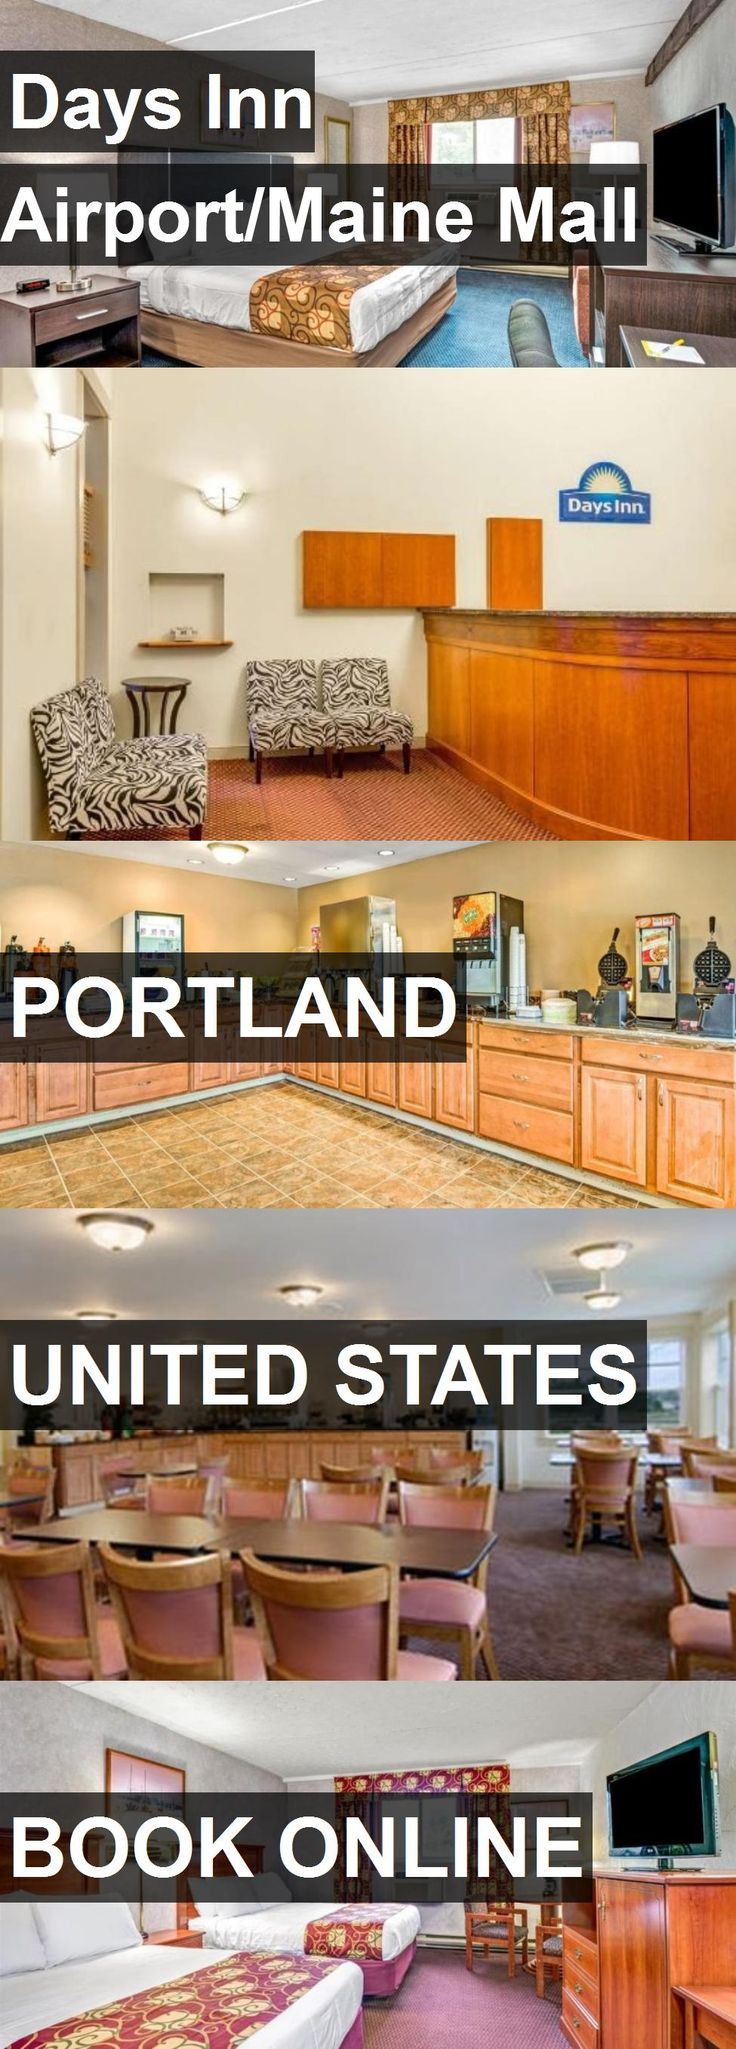 Hotel Days Inn Airport/Maine Mall in Portland, United States. For more information, photos, reviews and best prices please follow the link. #UnitedStates #Portland #DaysInnAirport/MaineMall #hotel #travel #vacation